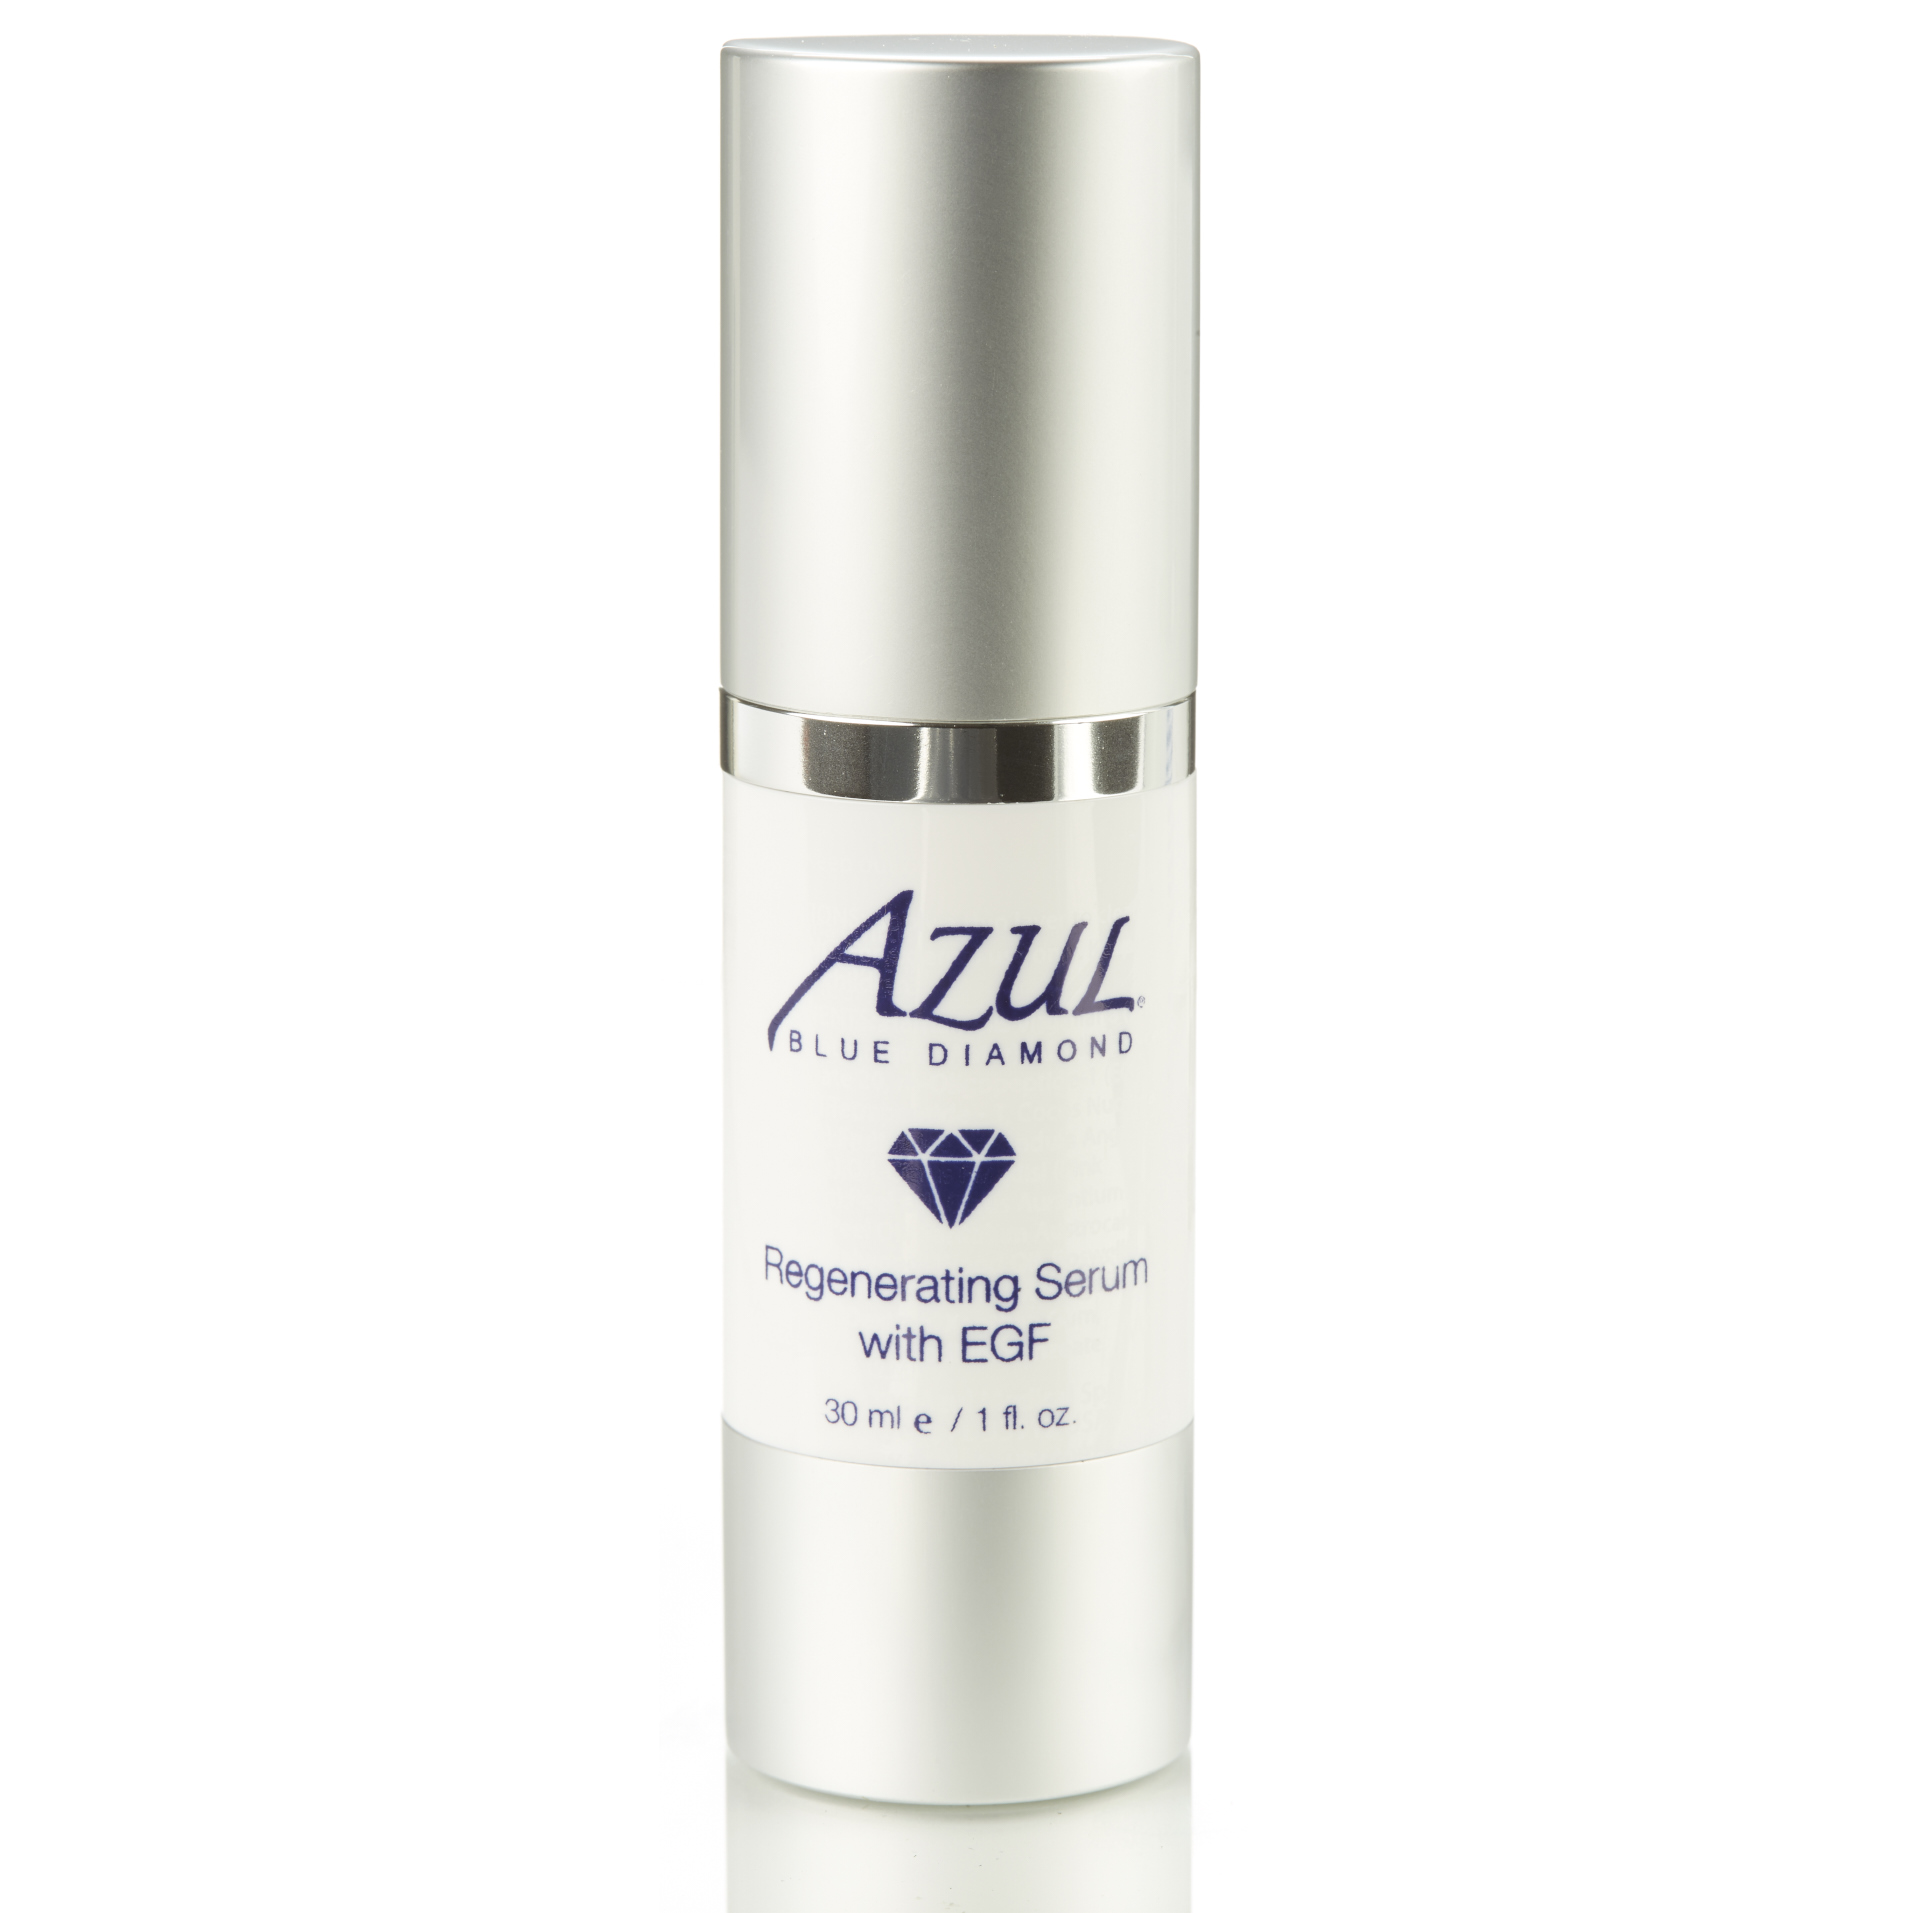 Azul Blue Diamond - Regenerating Serum with EGF